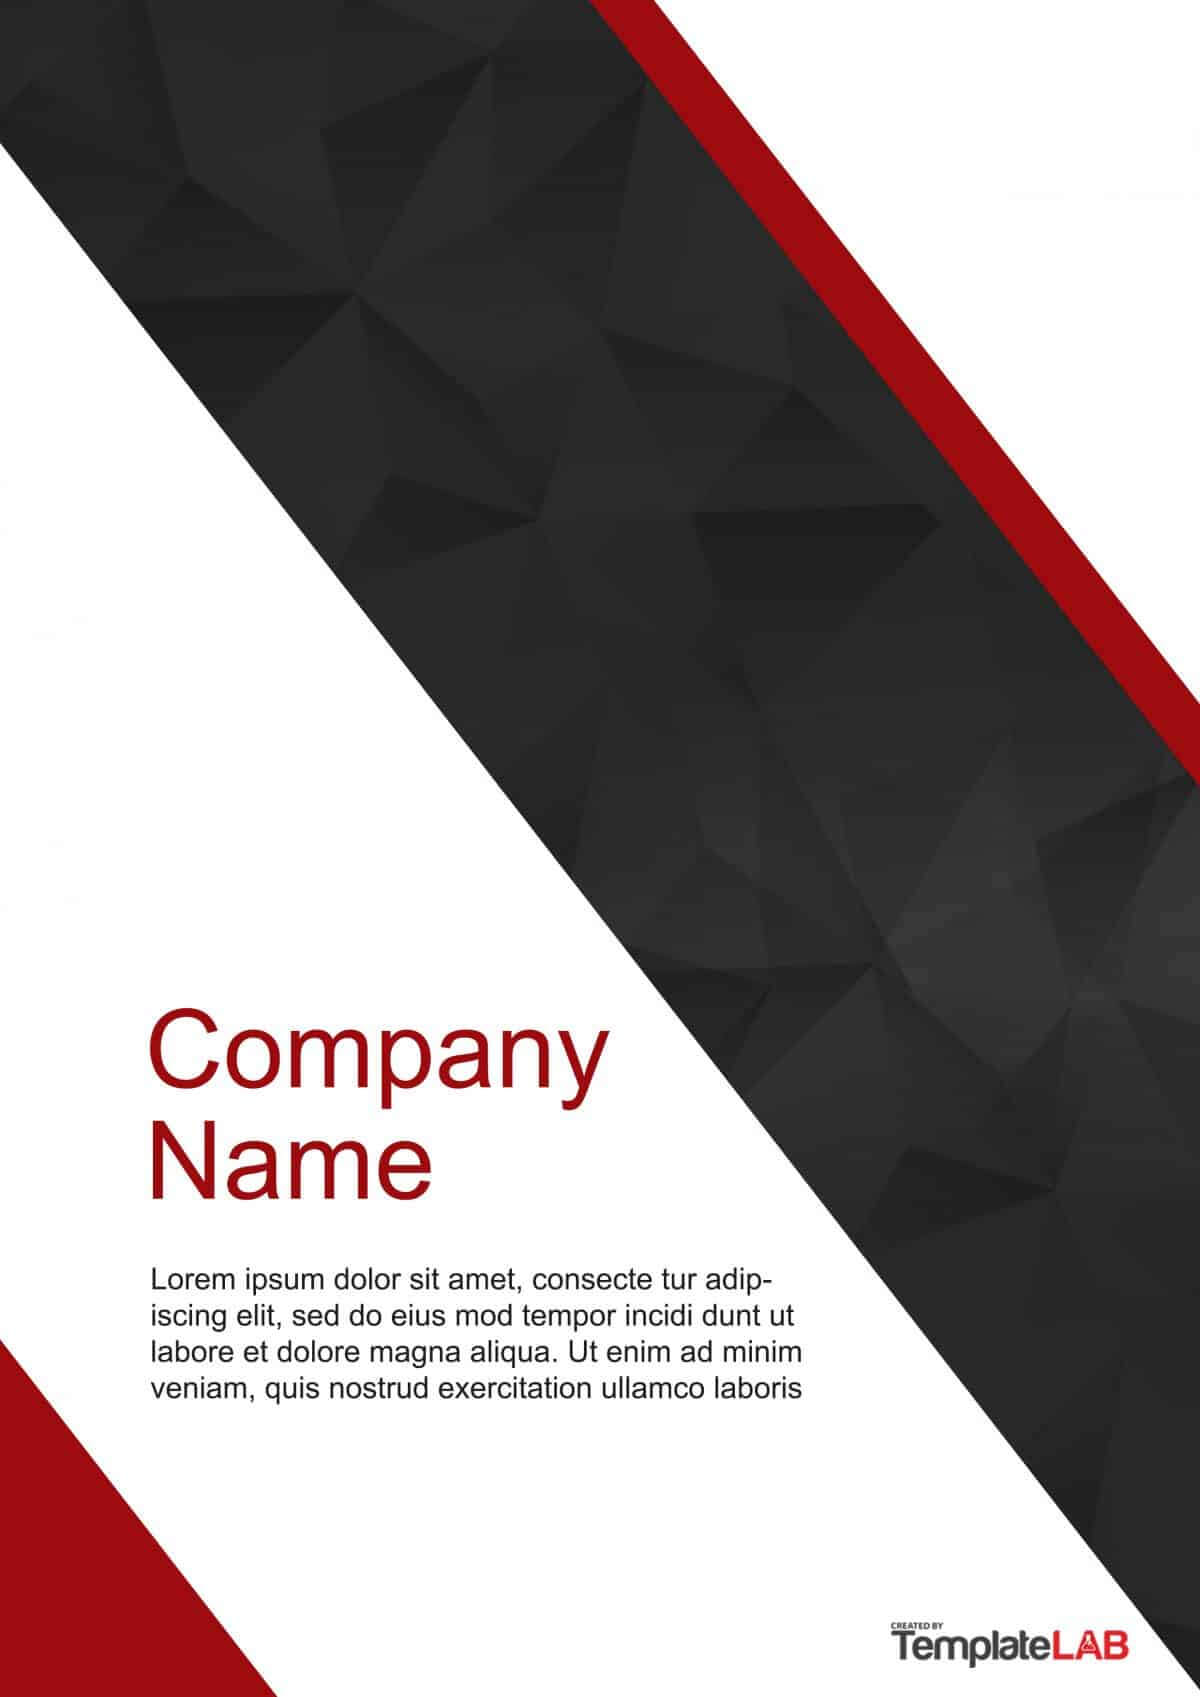 39 Amazing Cover Page Templates (Word + Psd) ᐅ Template Lab Pertaining To Microsoft Word Cover Page Templates Download